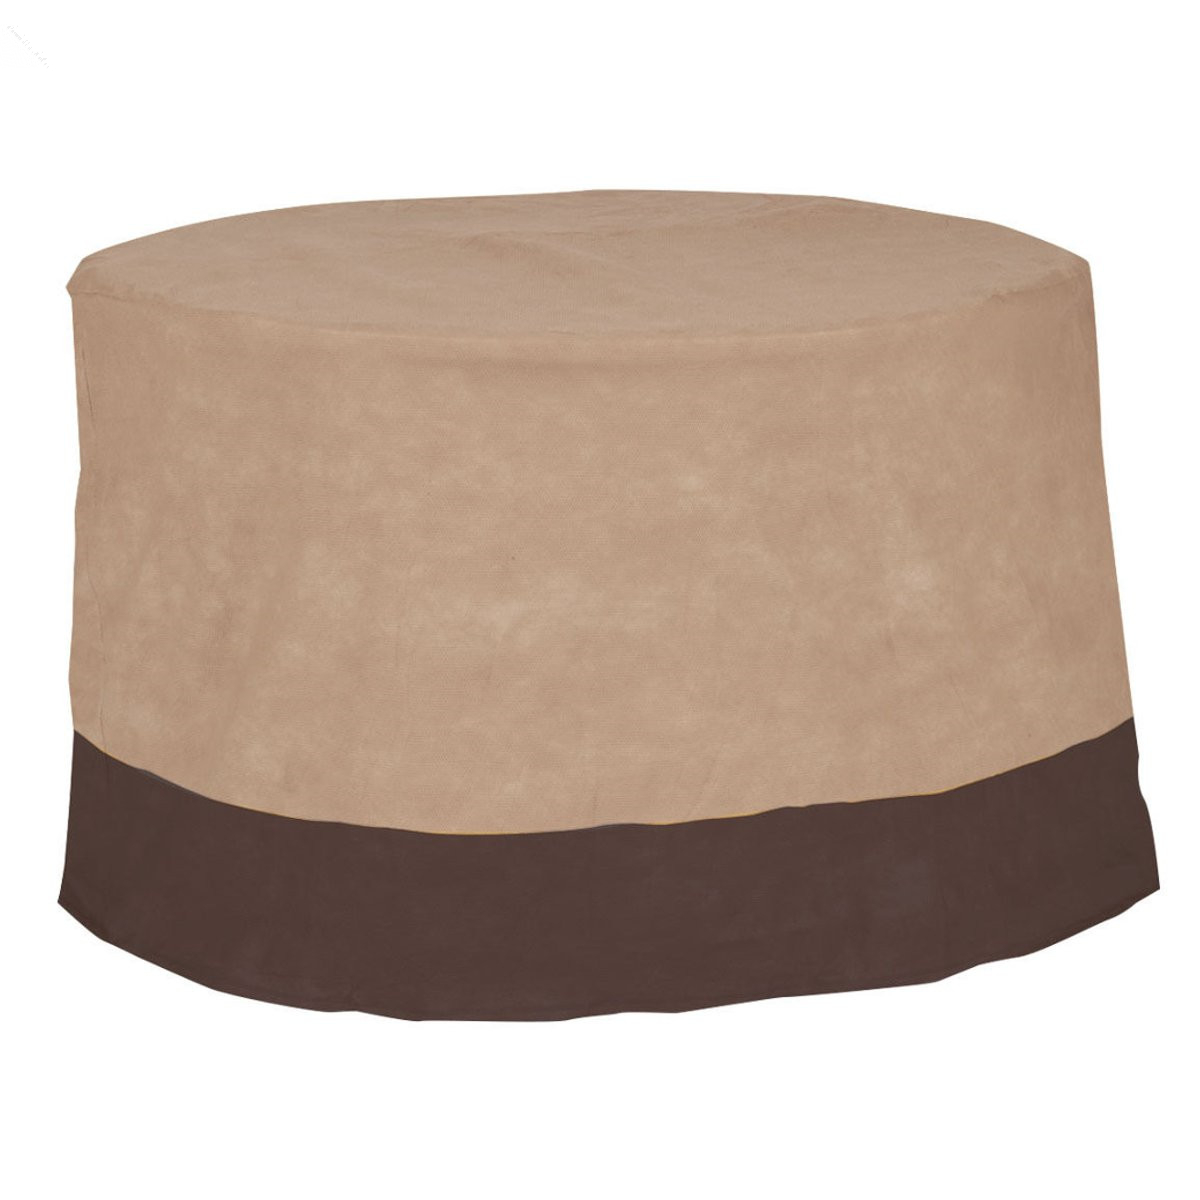 48inch Round Large Waterproof Outdoor Patio Round Table Chair Cover Furniture Protection